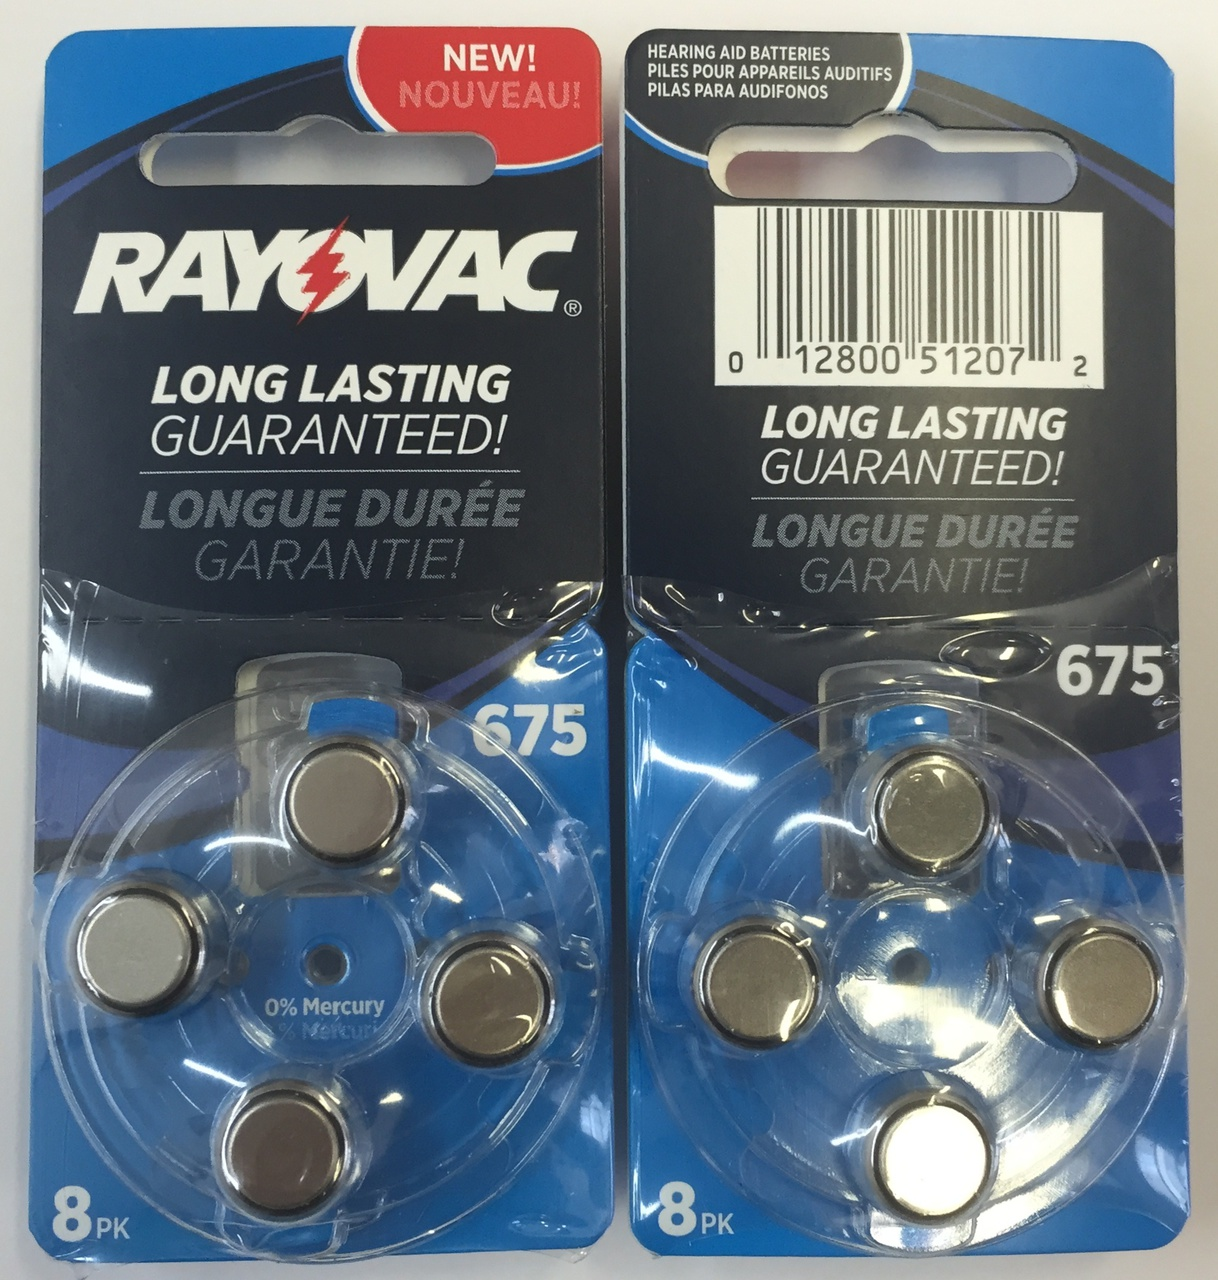 Rayovac Hearing Aid Batteries Size 675 - 16 Batteries + FREE SHIPPING!